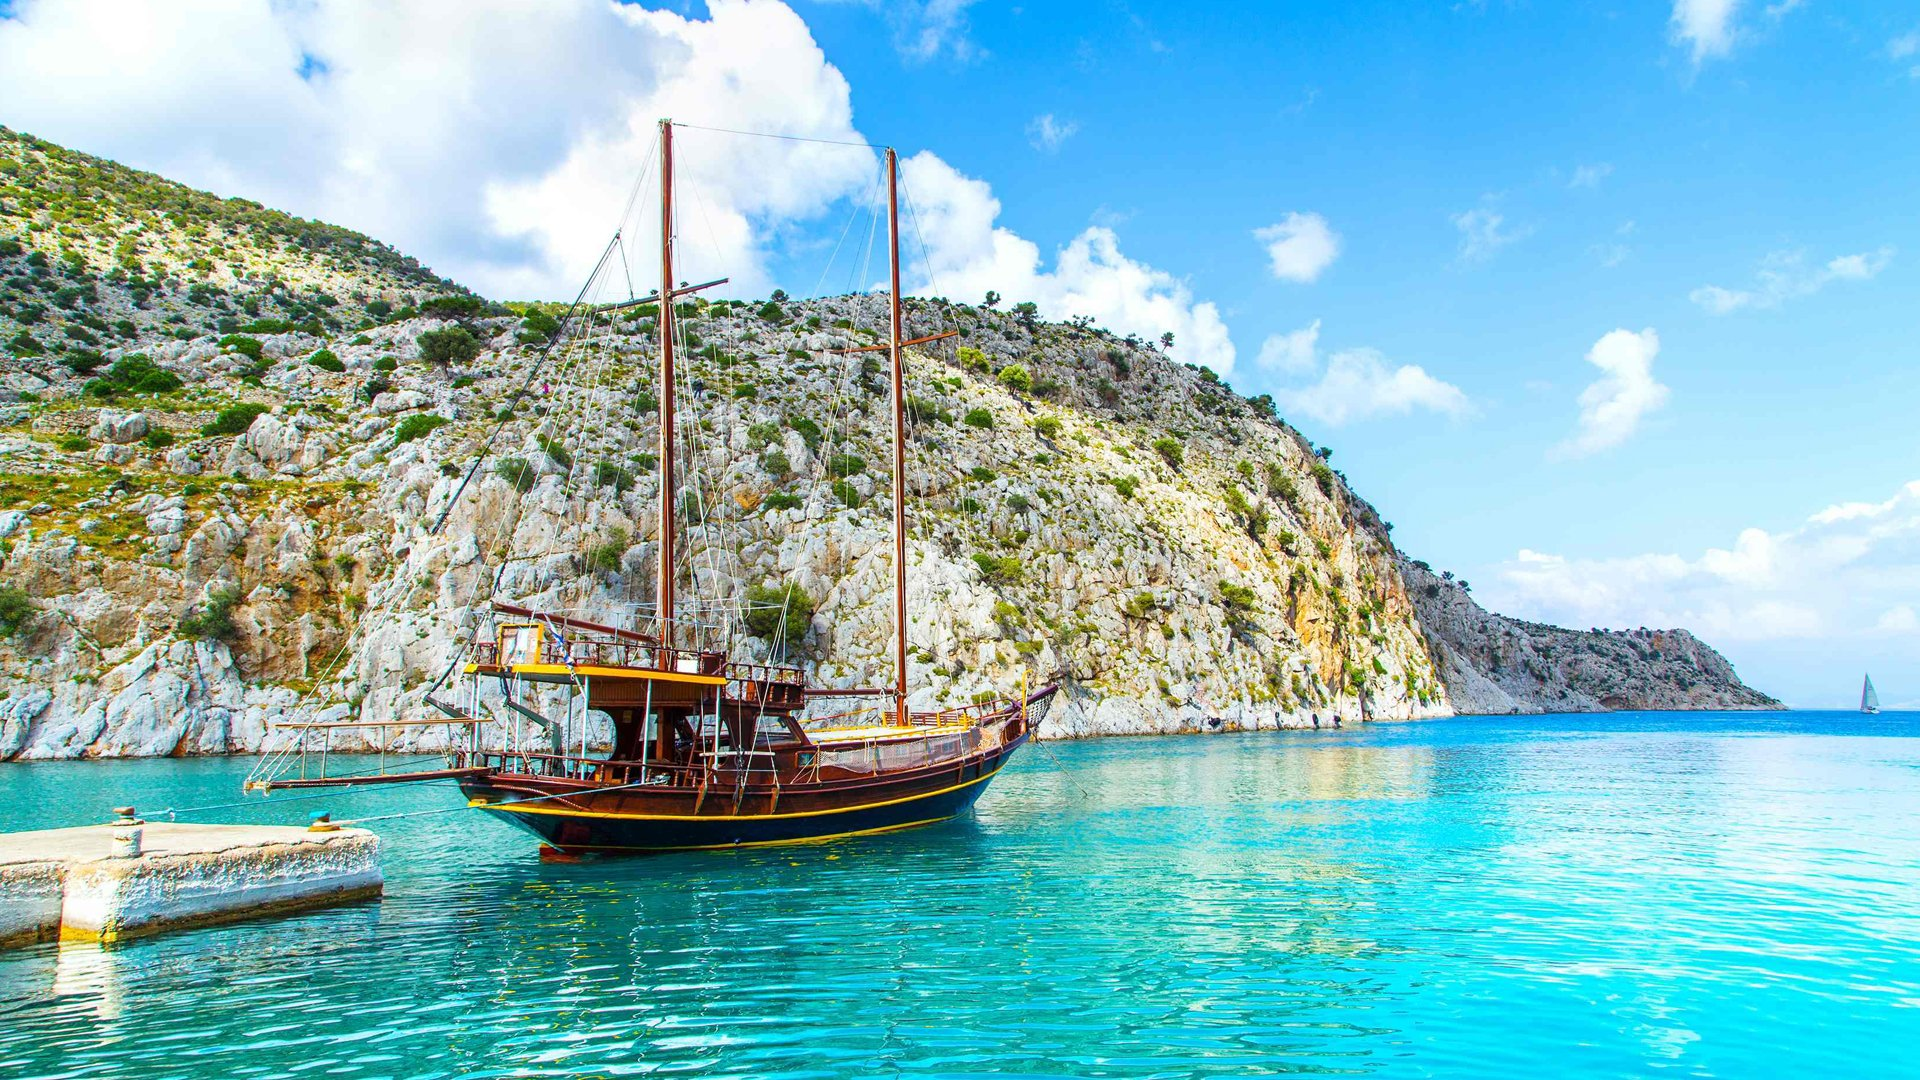 Fethiye 12 Islands Cruise Tour